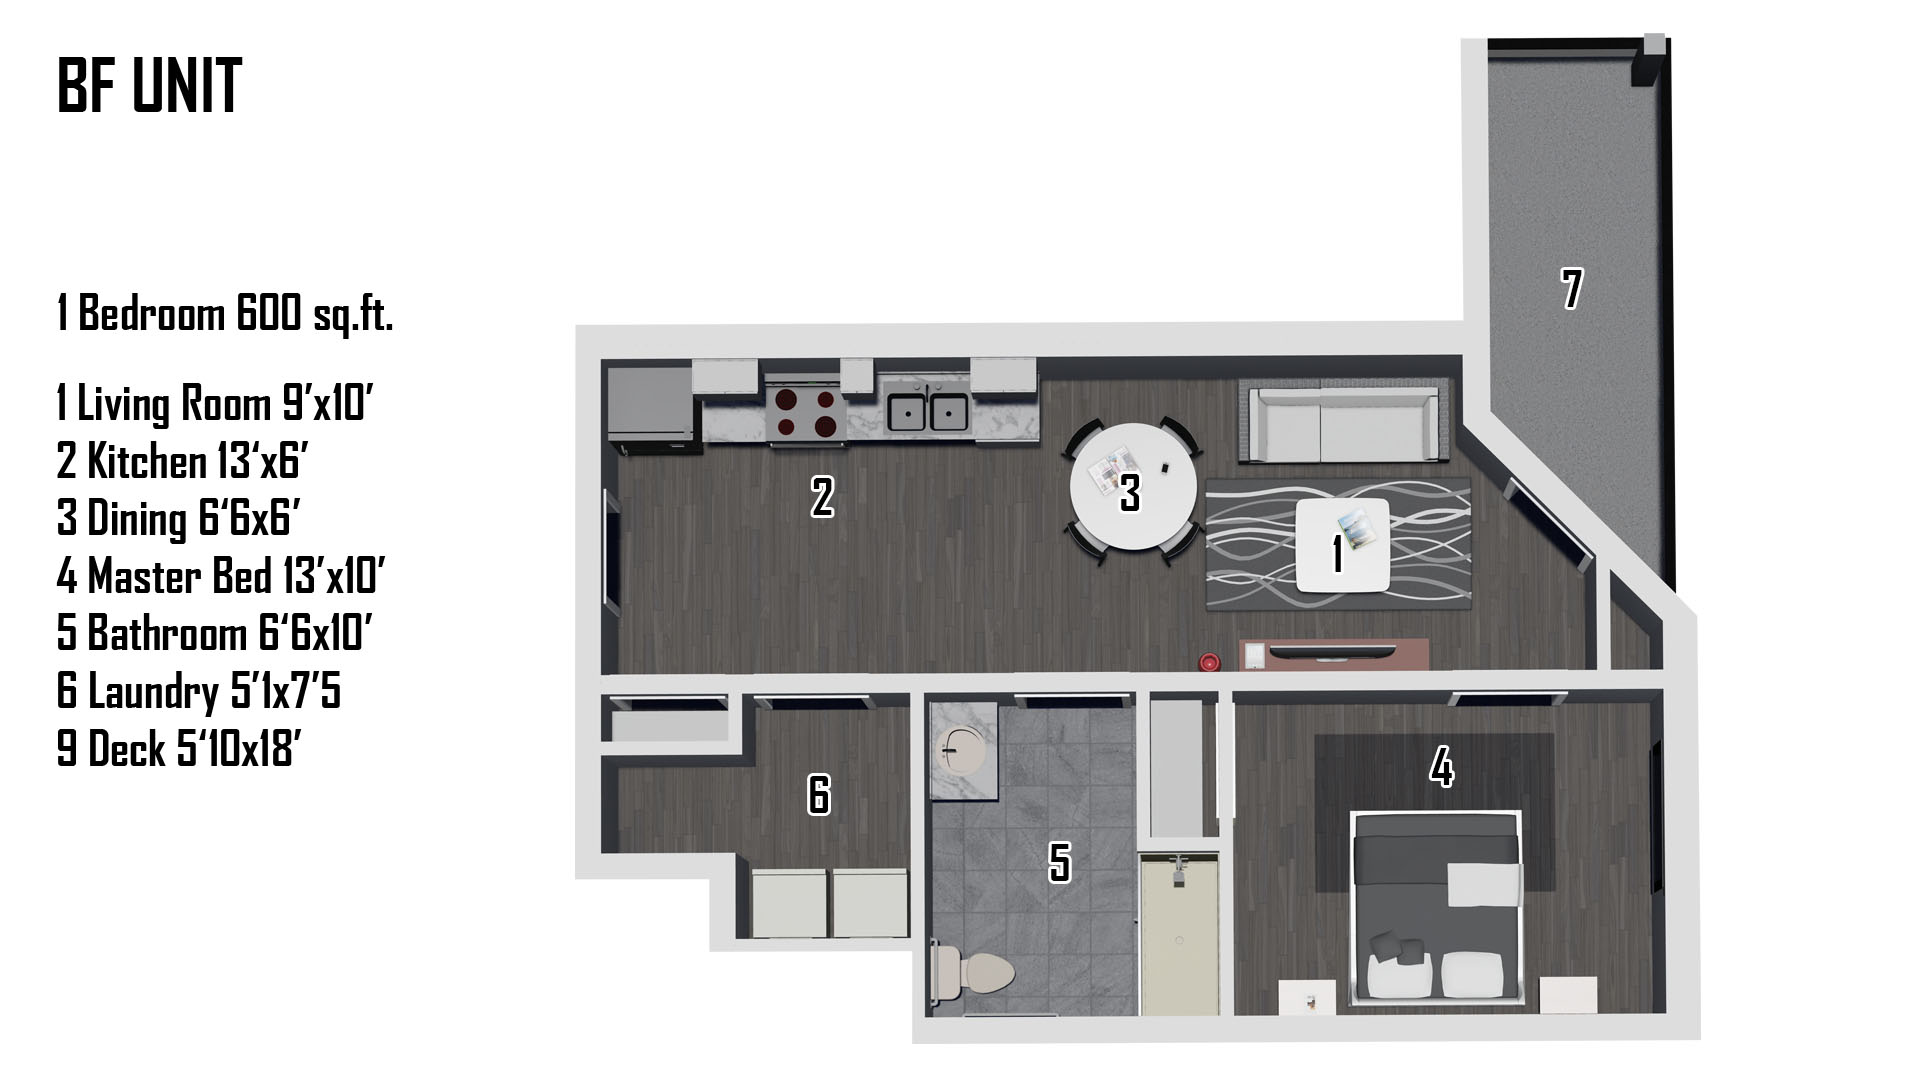 Handicapped Accessible Unit Floorplan